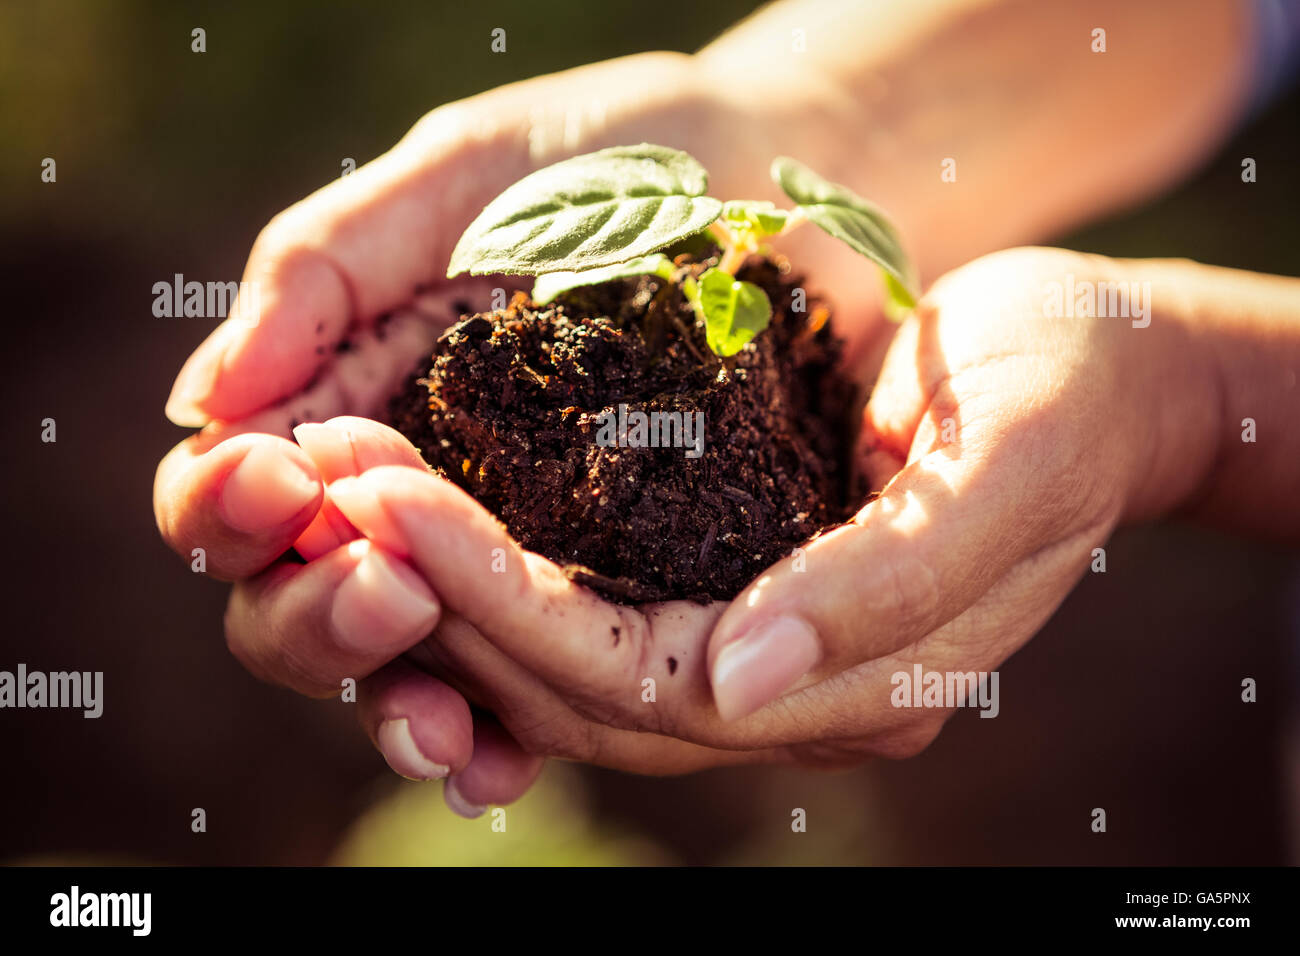 Close-up of seedling and dirt in gardeners hands - Stock Image